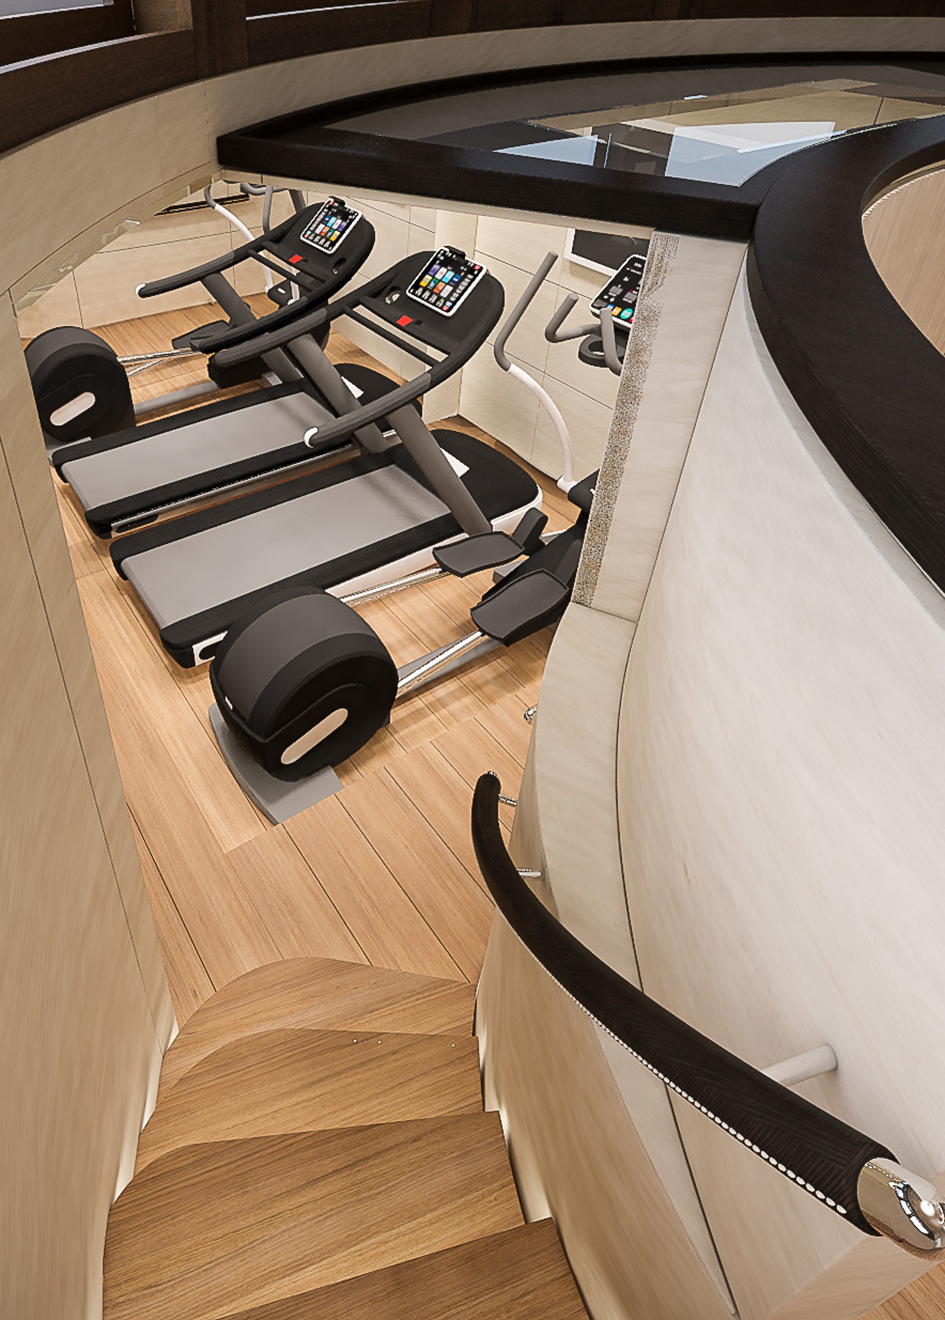 space-below-decks-on-the-filippetti-navetta-26-super-yacht-has-been-dedicated-to-a-gym